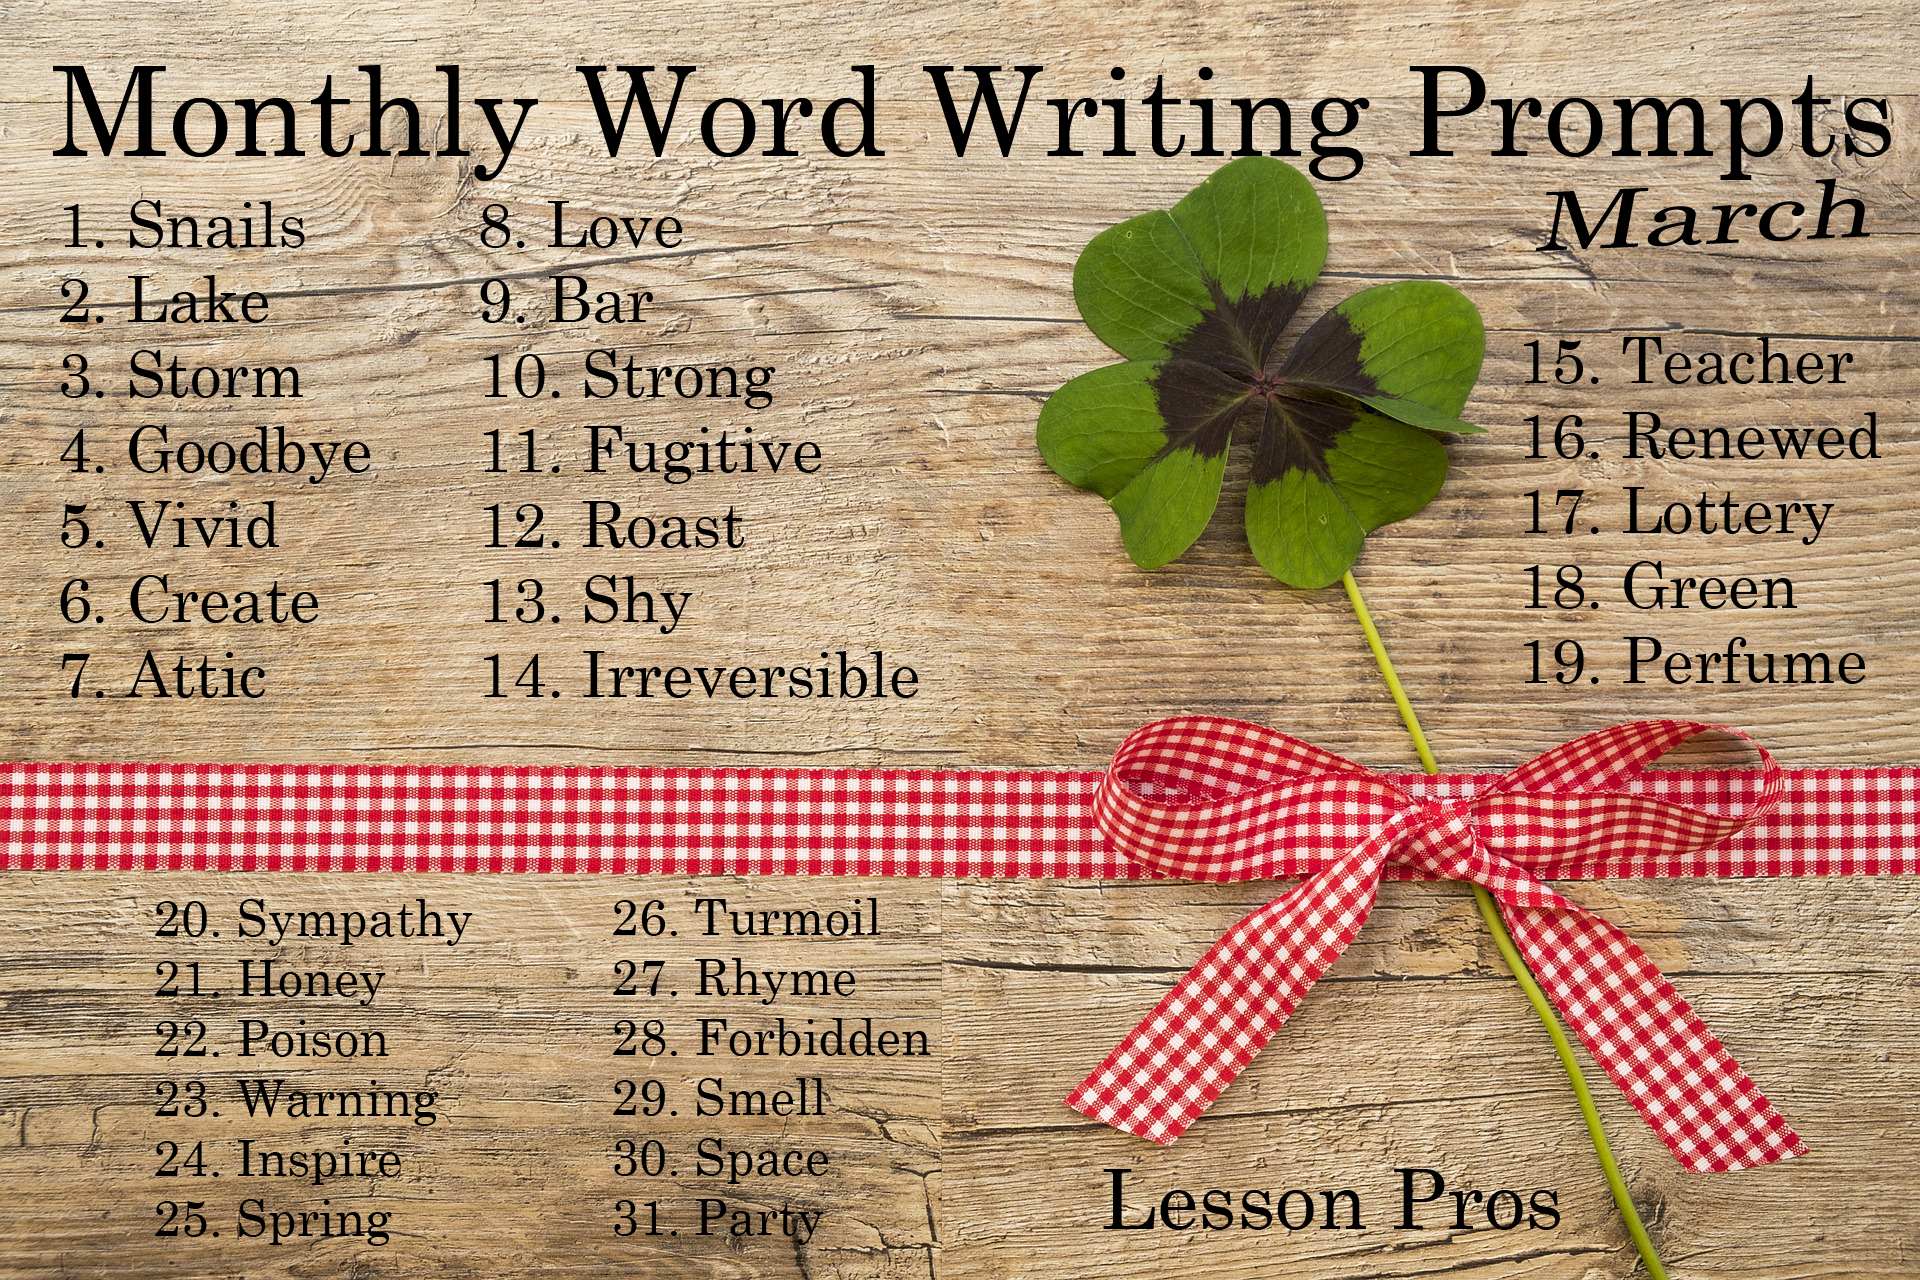 Word Writing Prompts - Lesson Pros